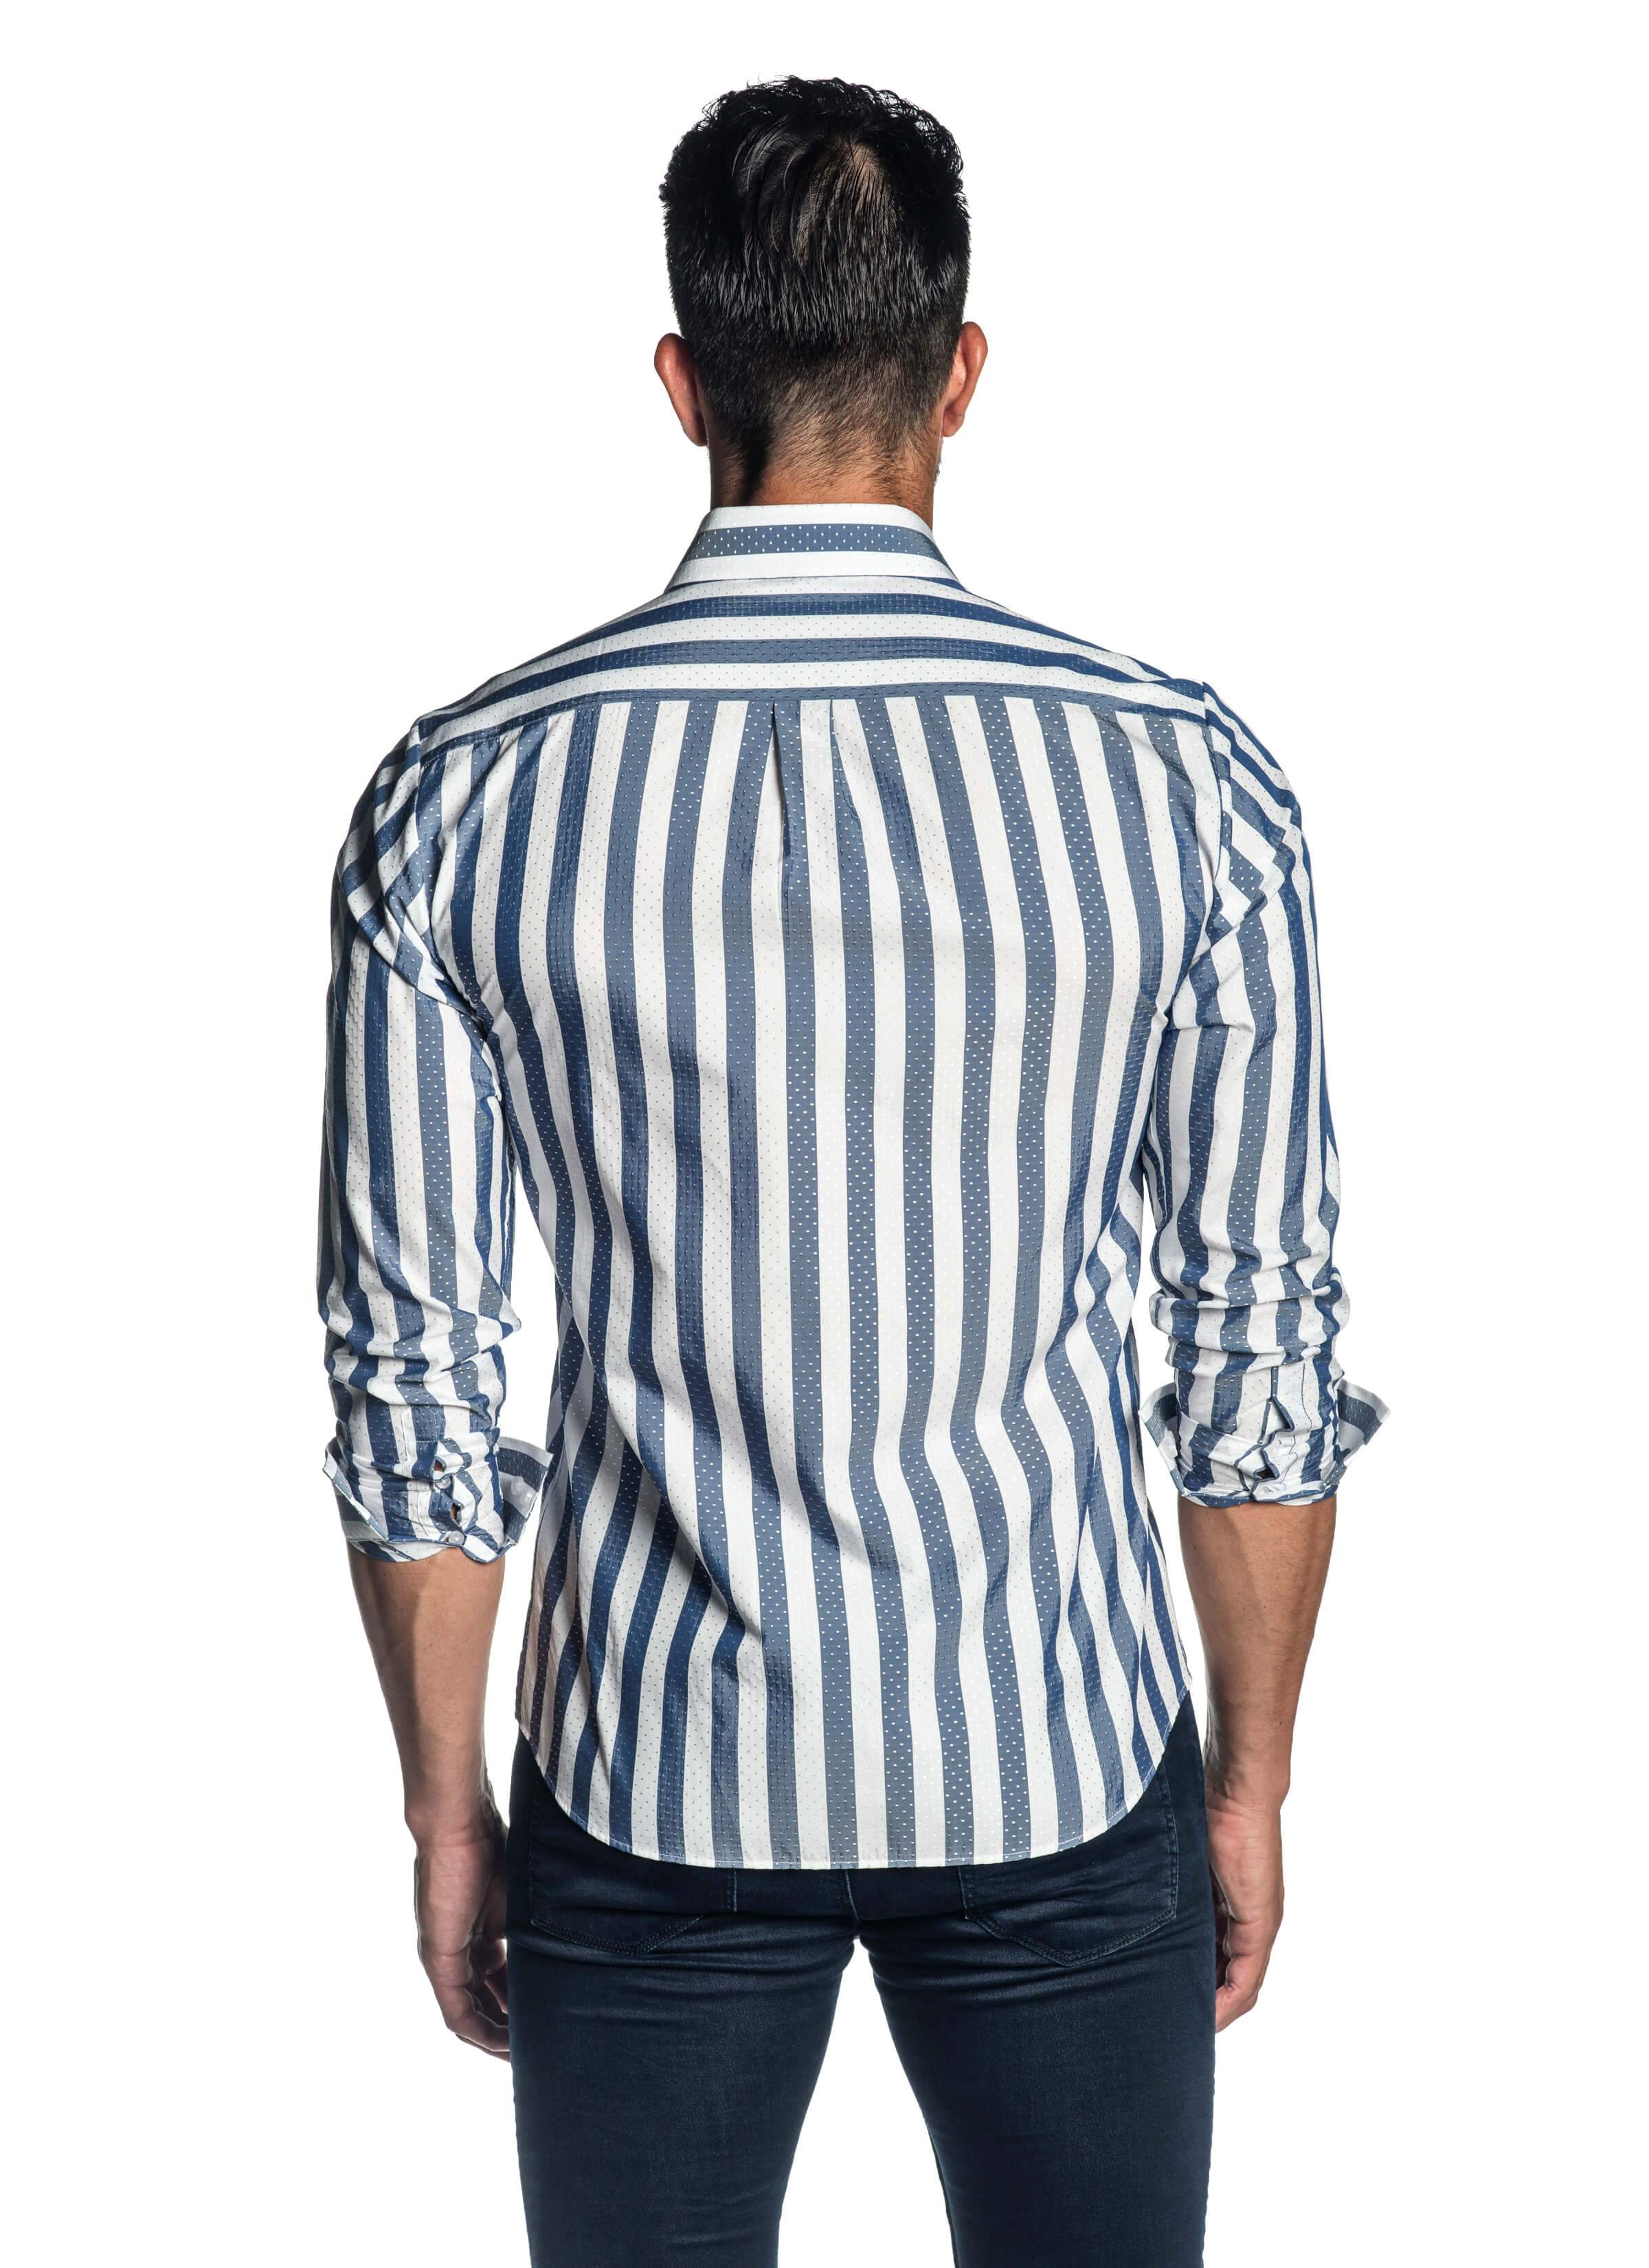 White and Blue Stripe Shirt for Men AH-ITA-T-9012